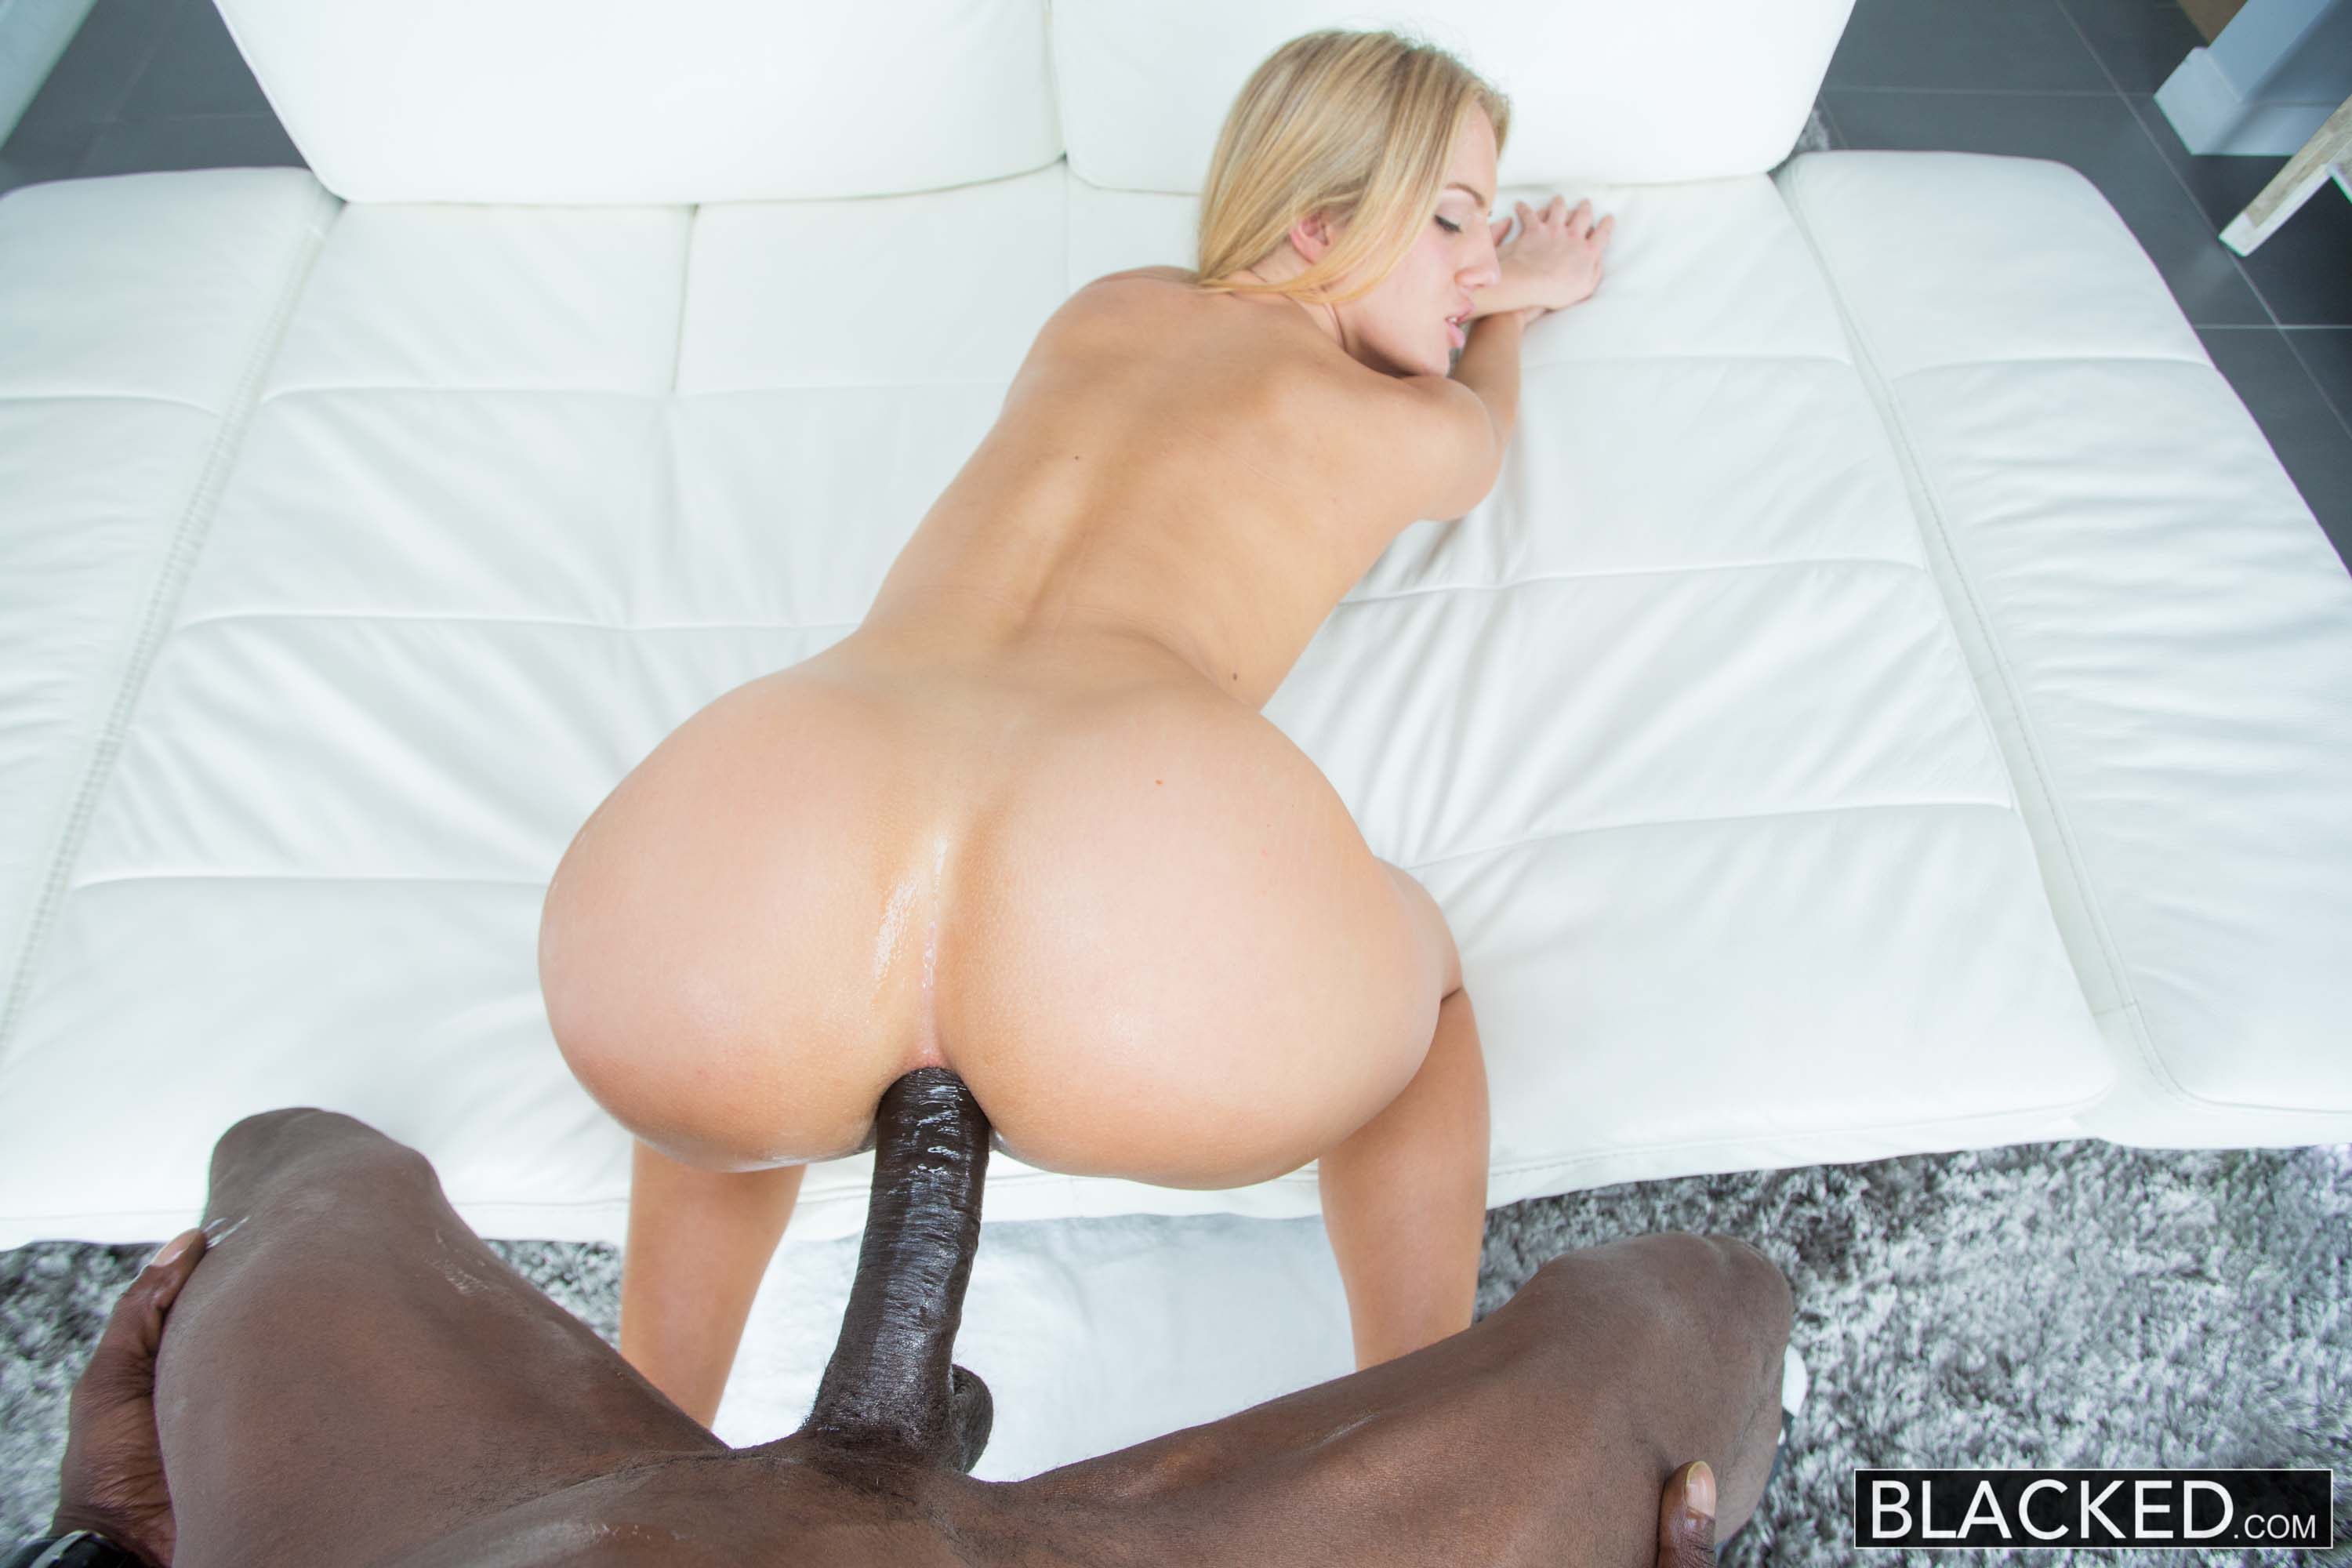 Hot blonde analyzed asshole and tasting huge cock